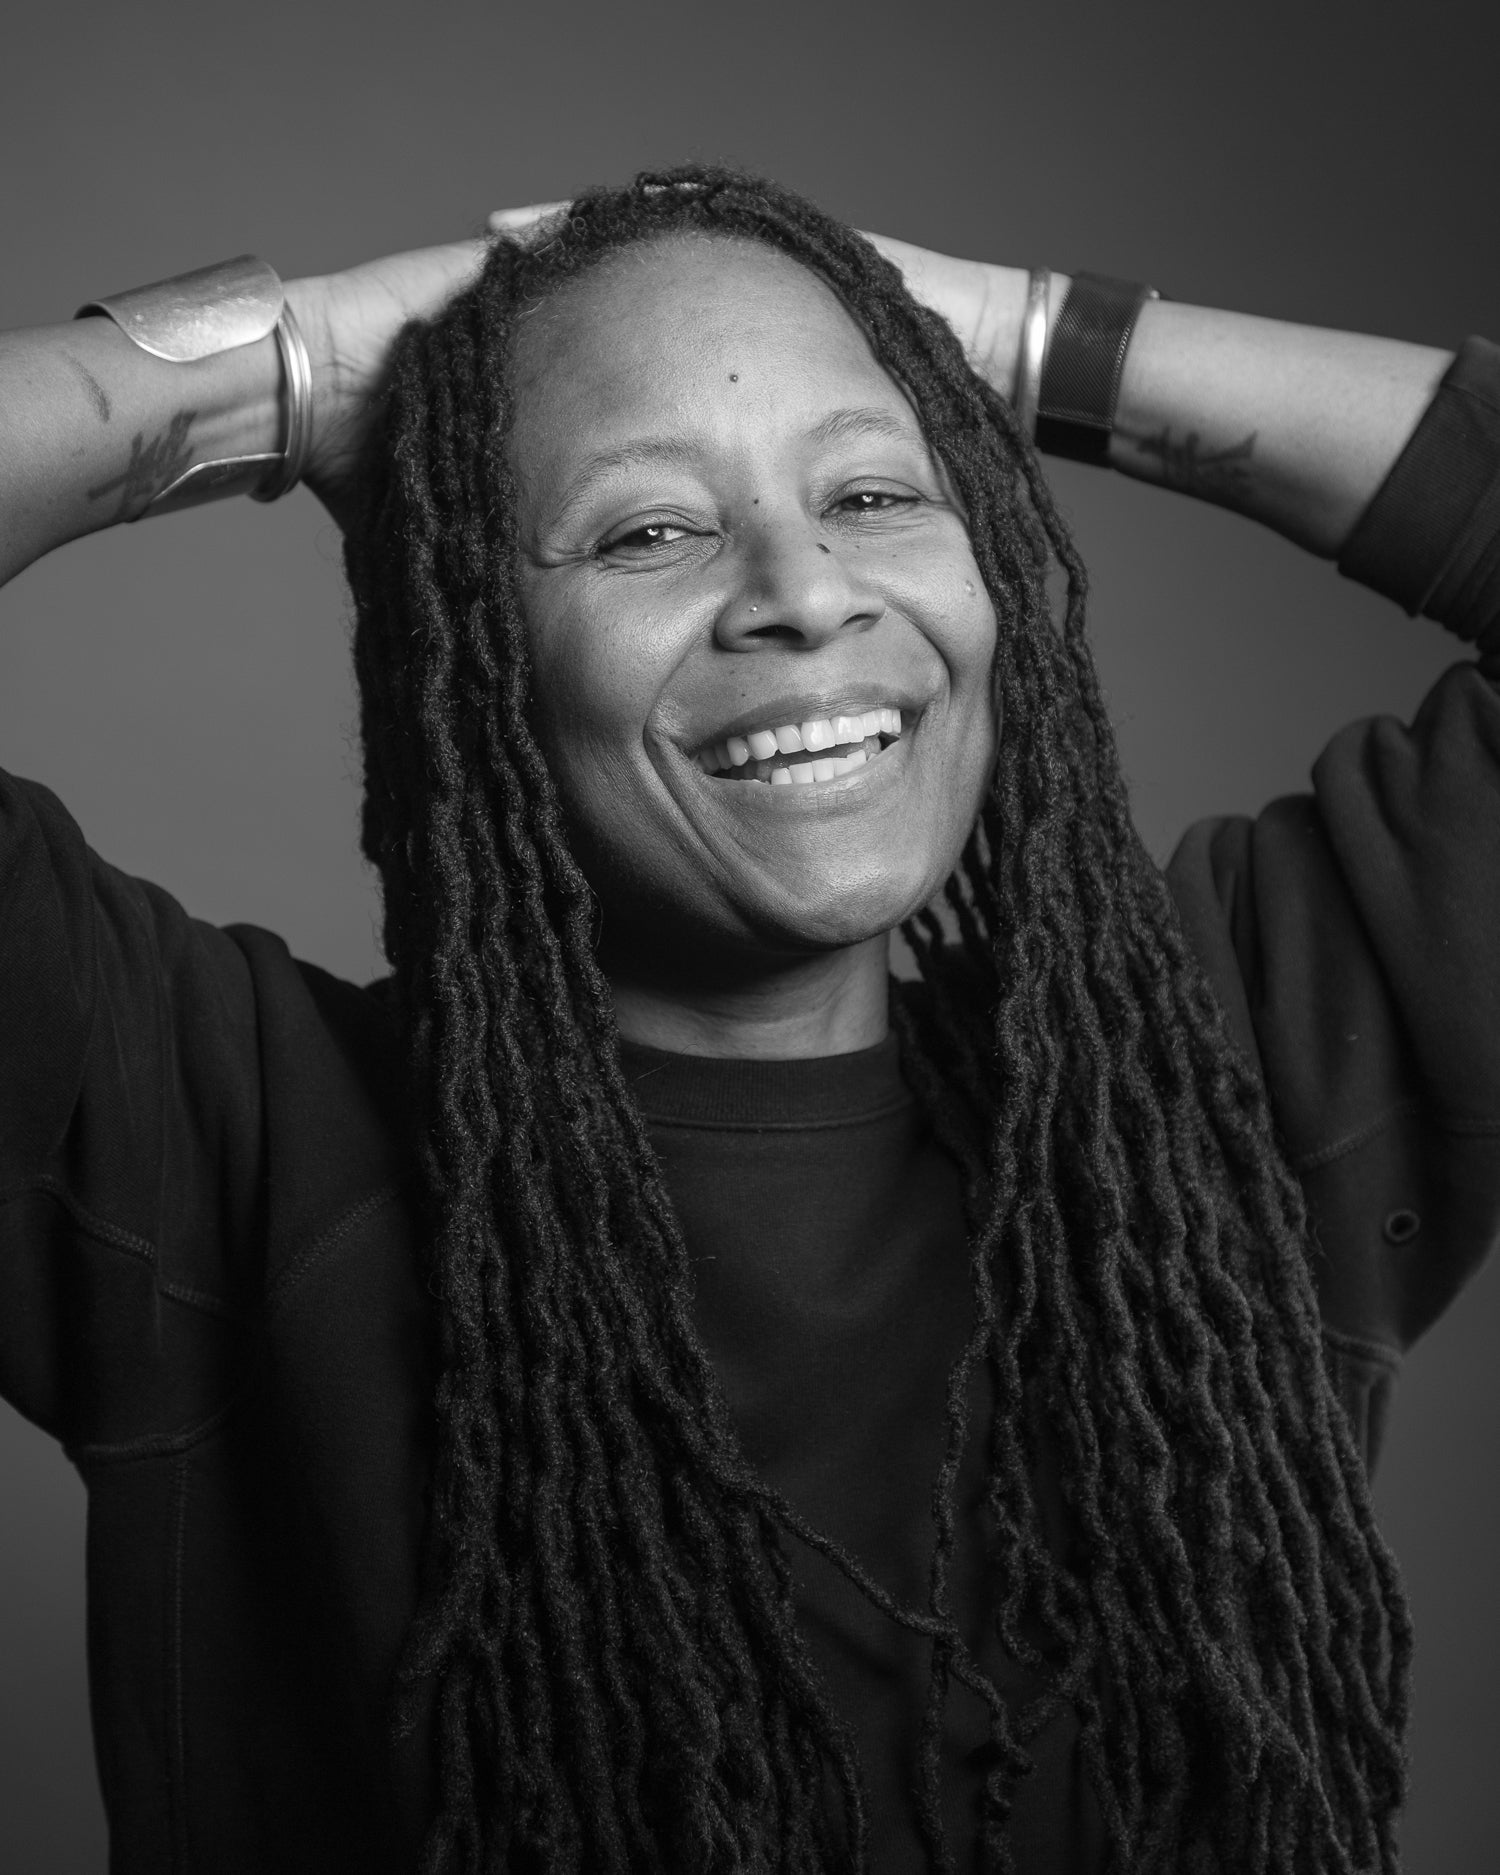 From Process to Progress—A Poetry Writing Workshop with t'ai freedom ford (May 2)